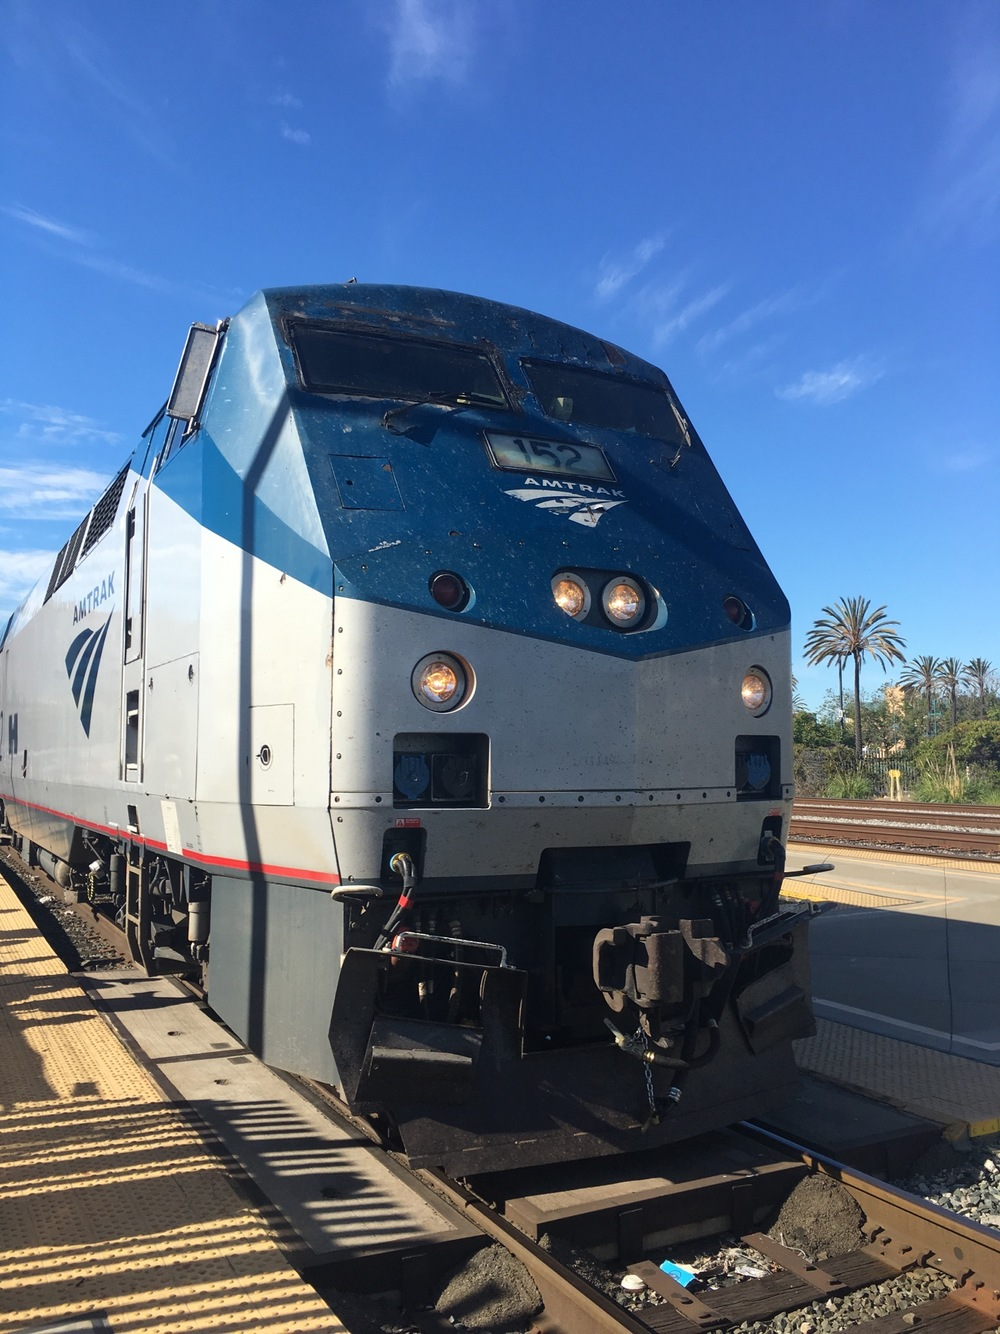 This is the California Zephyr!